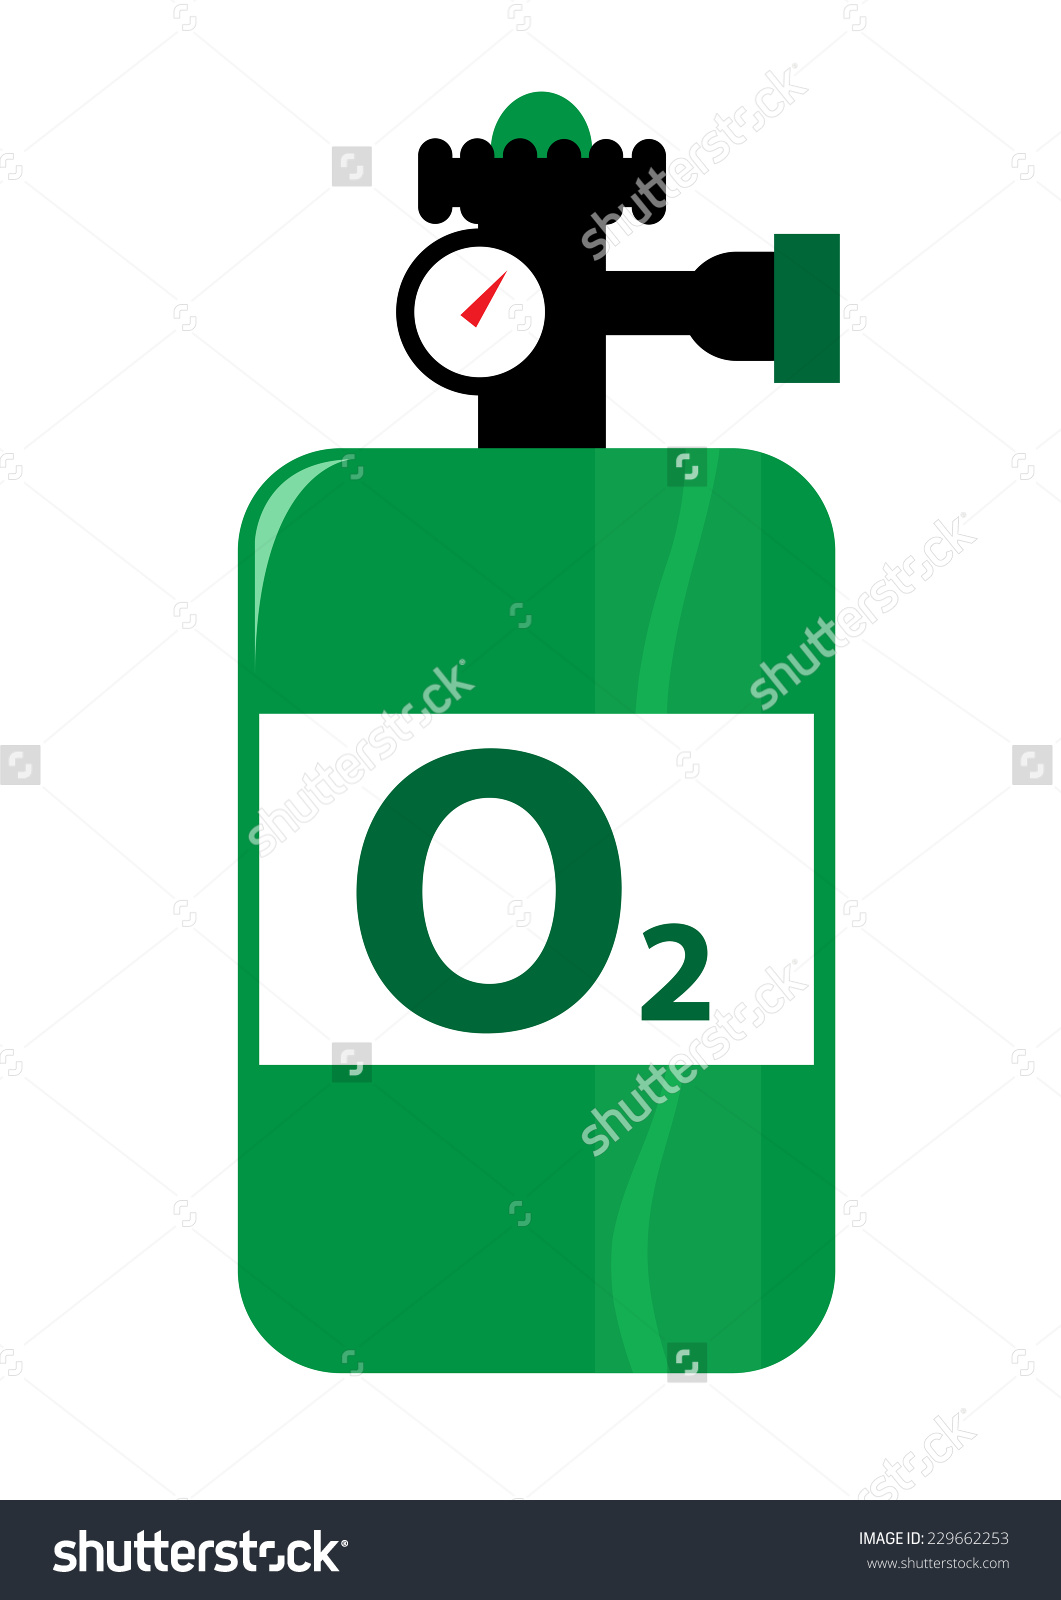 clipart oxygen tank clipground stove clip art images store clip art funny